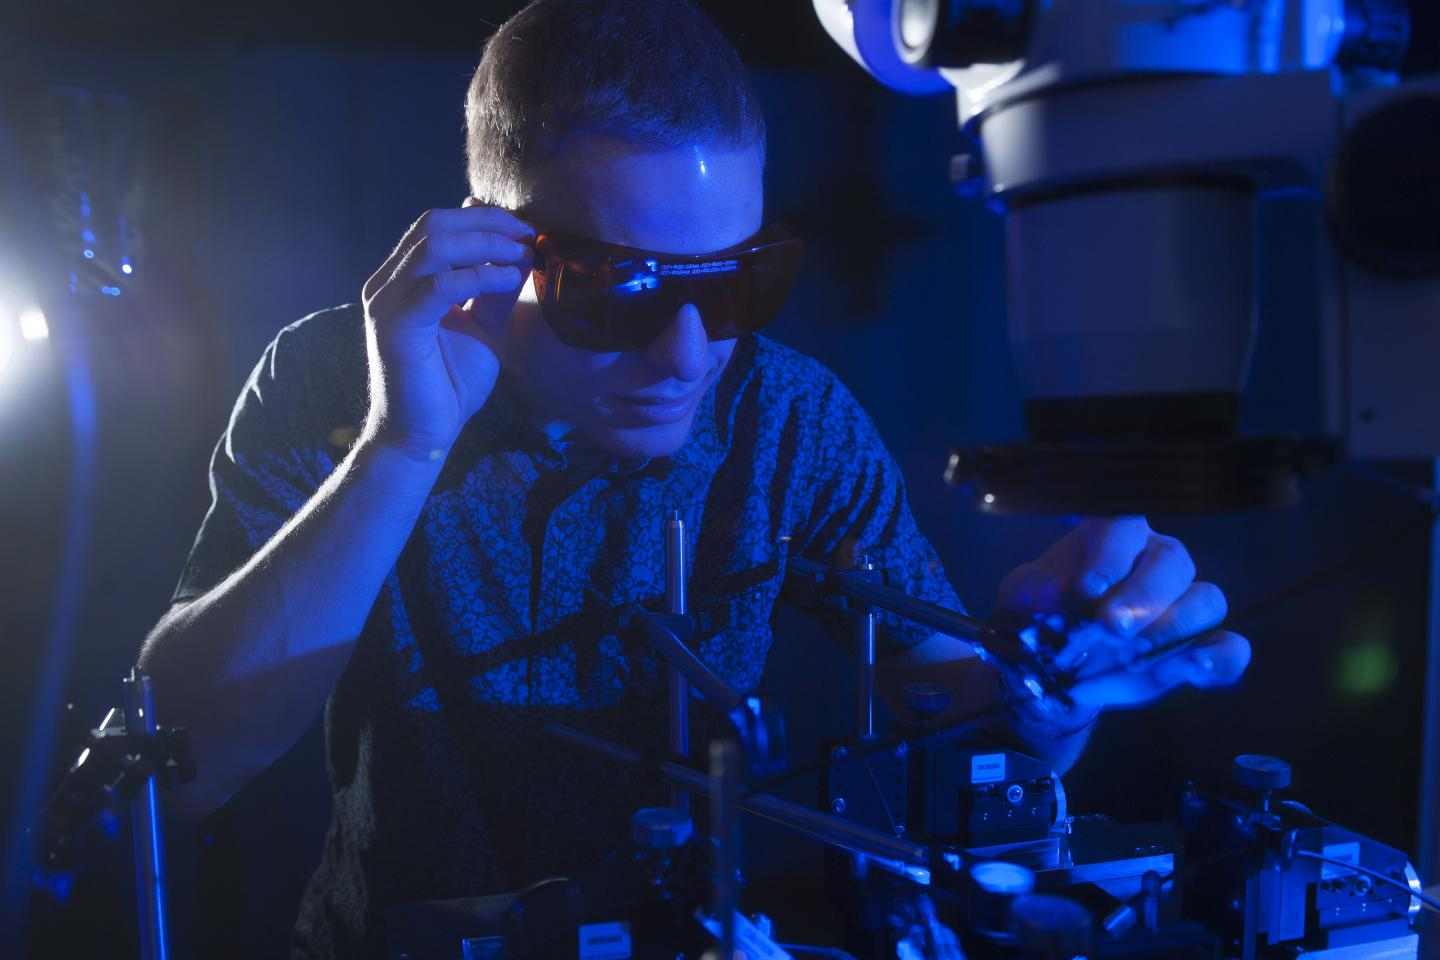 NSF Graduate Research Fellow Erik Anderson tests the conversion of blue light to electricity with a new higher efficiency rectenna design. Optical rectenna, Georgia Tech.